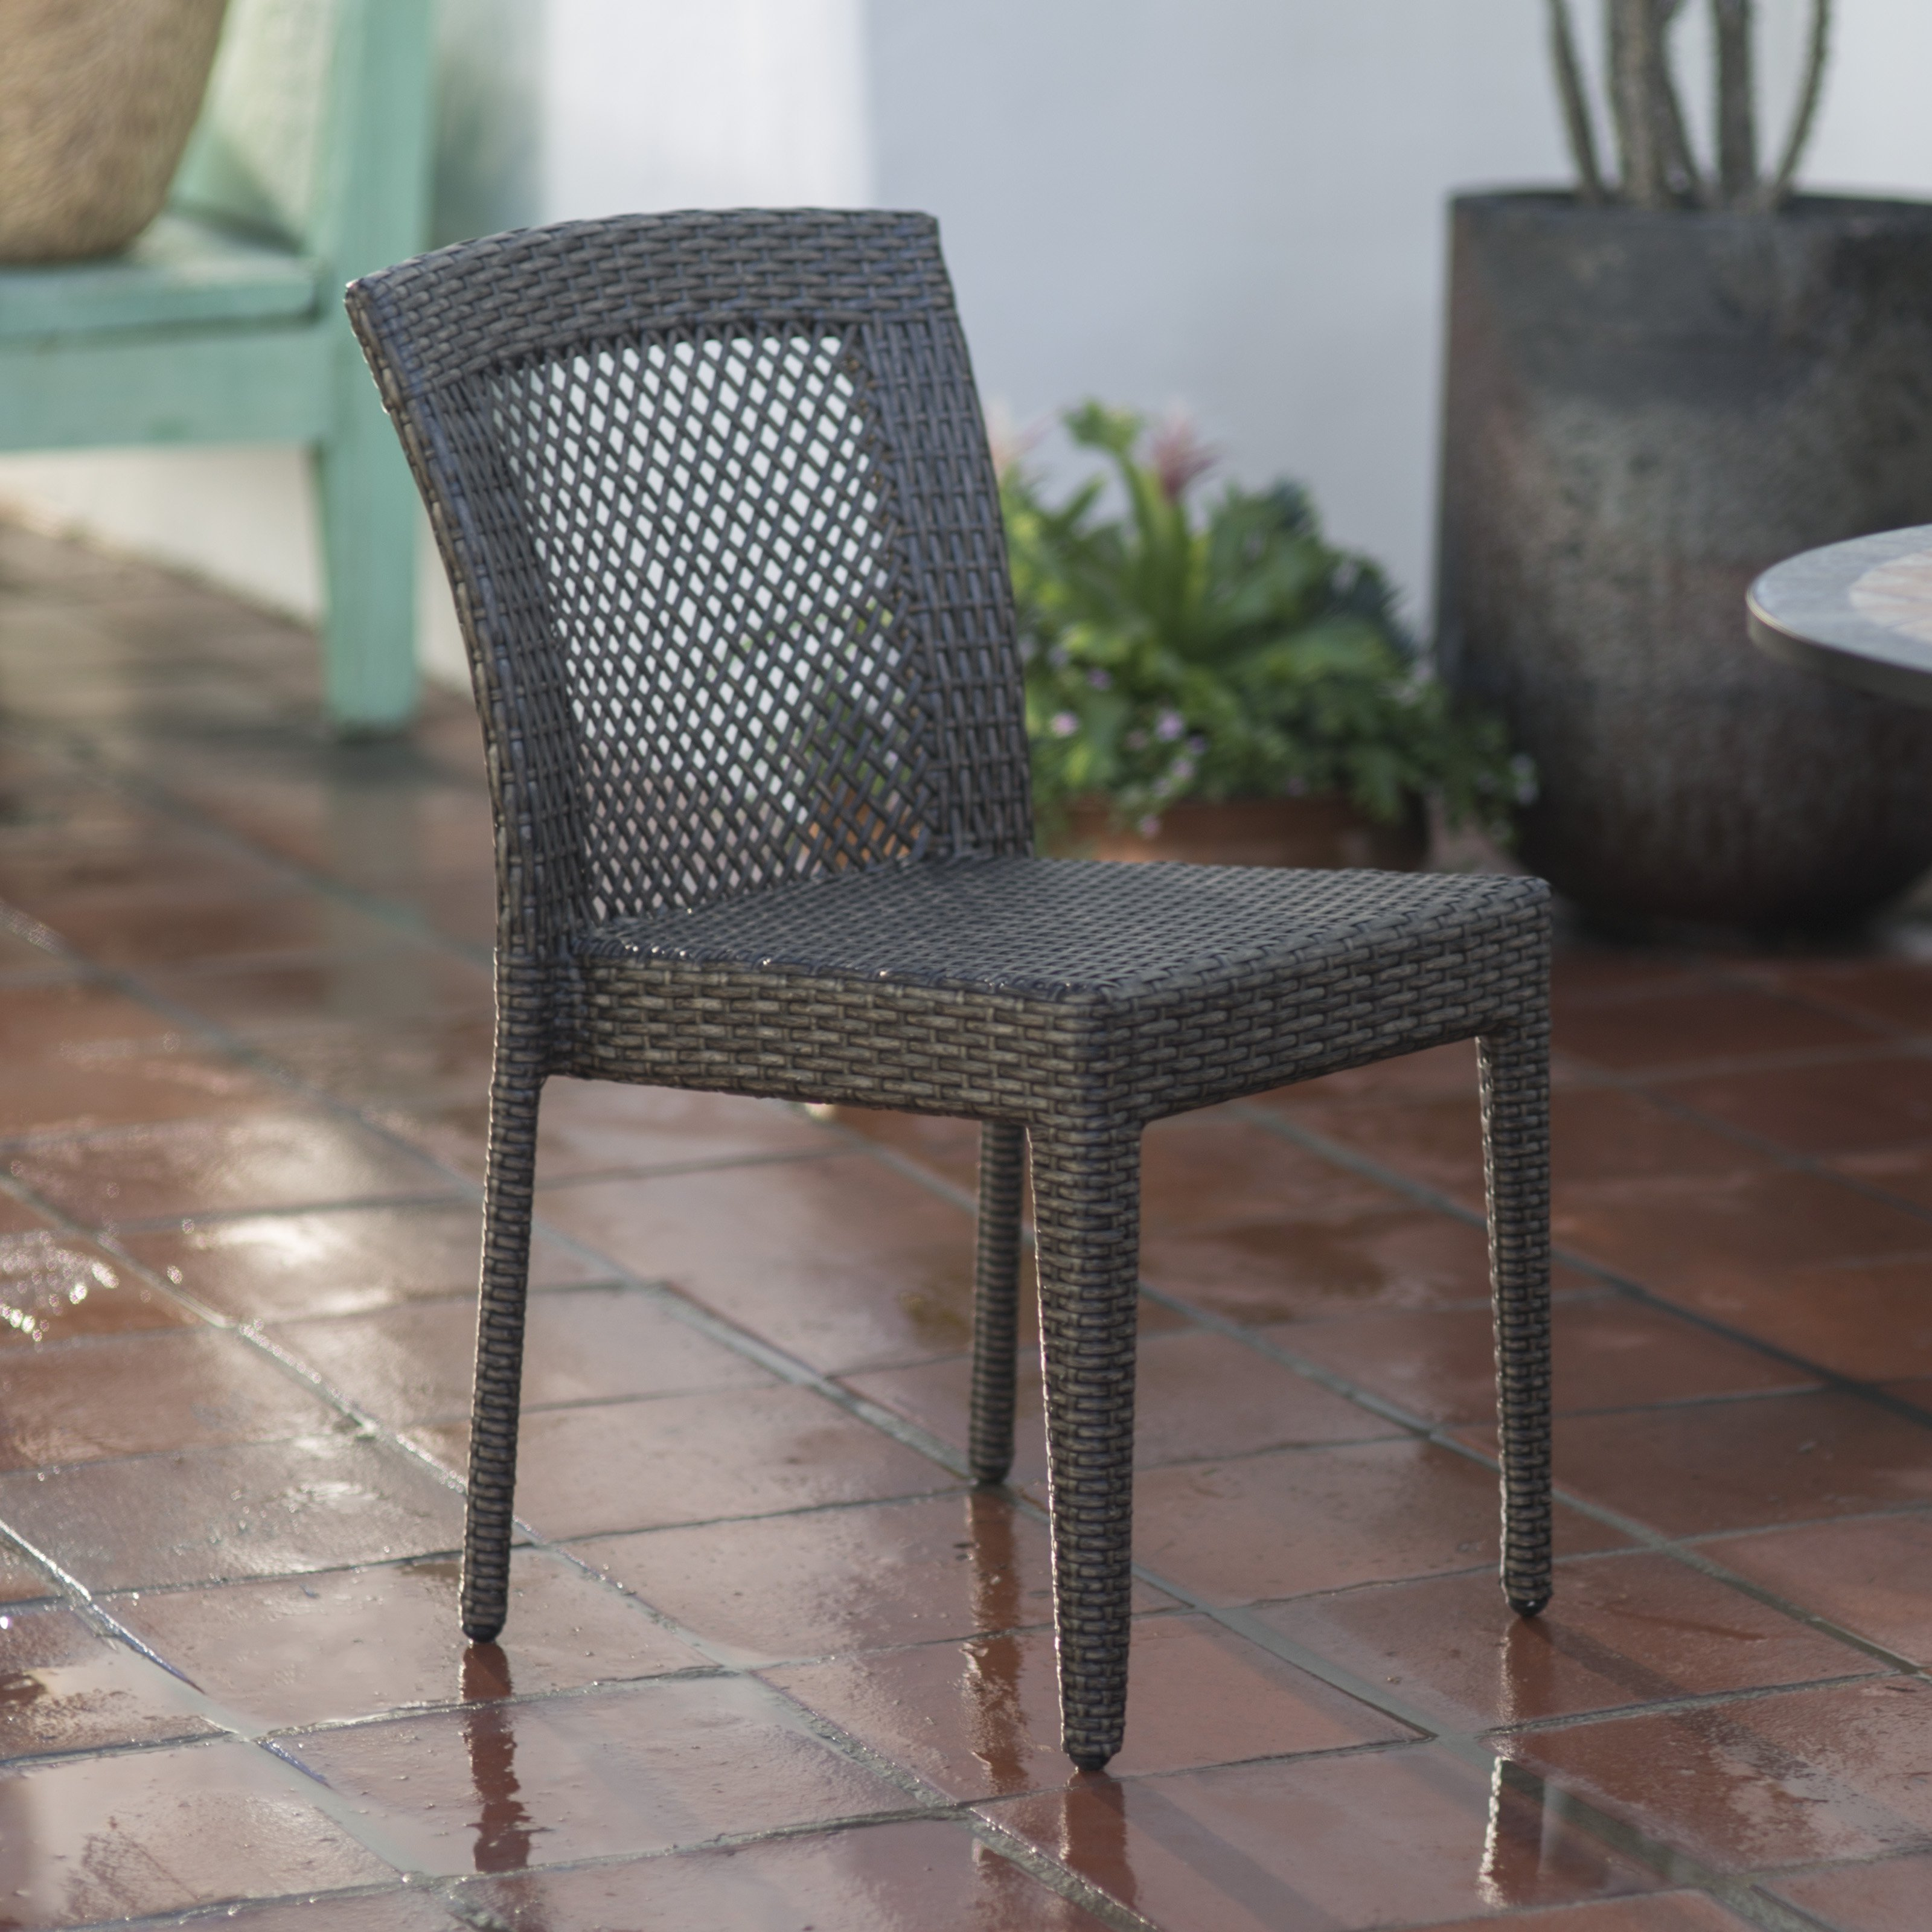 Coral Coast Brisbane All-Weather Wicker Open Patio Dining Chair Set of 2 by